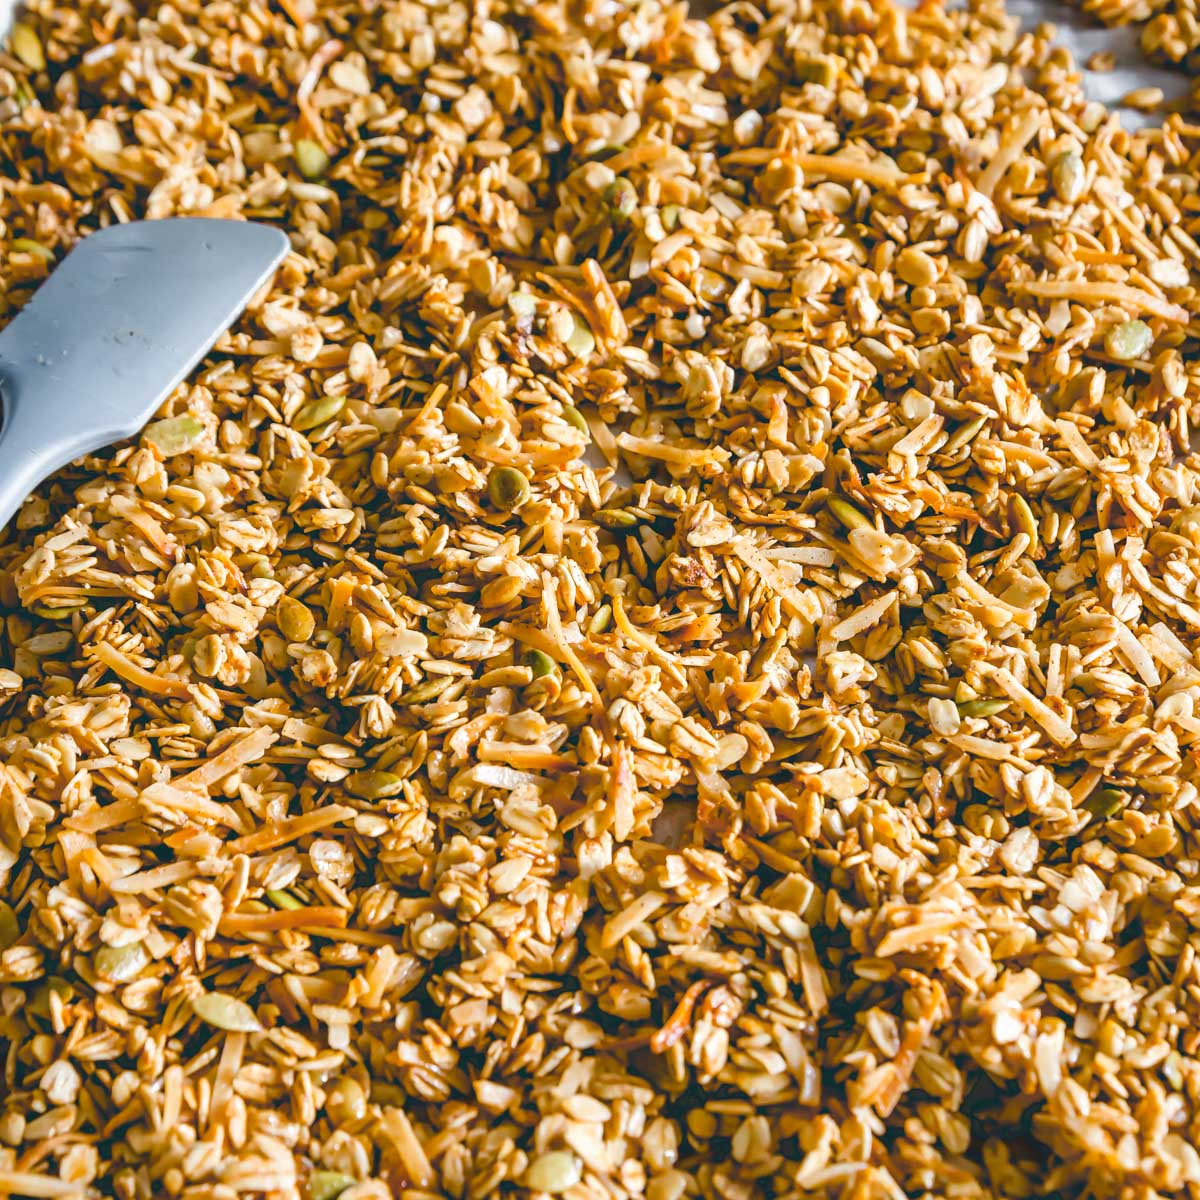 Golden brown baked granola without nuts straight out of the oven before dried fruit is added.